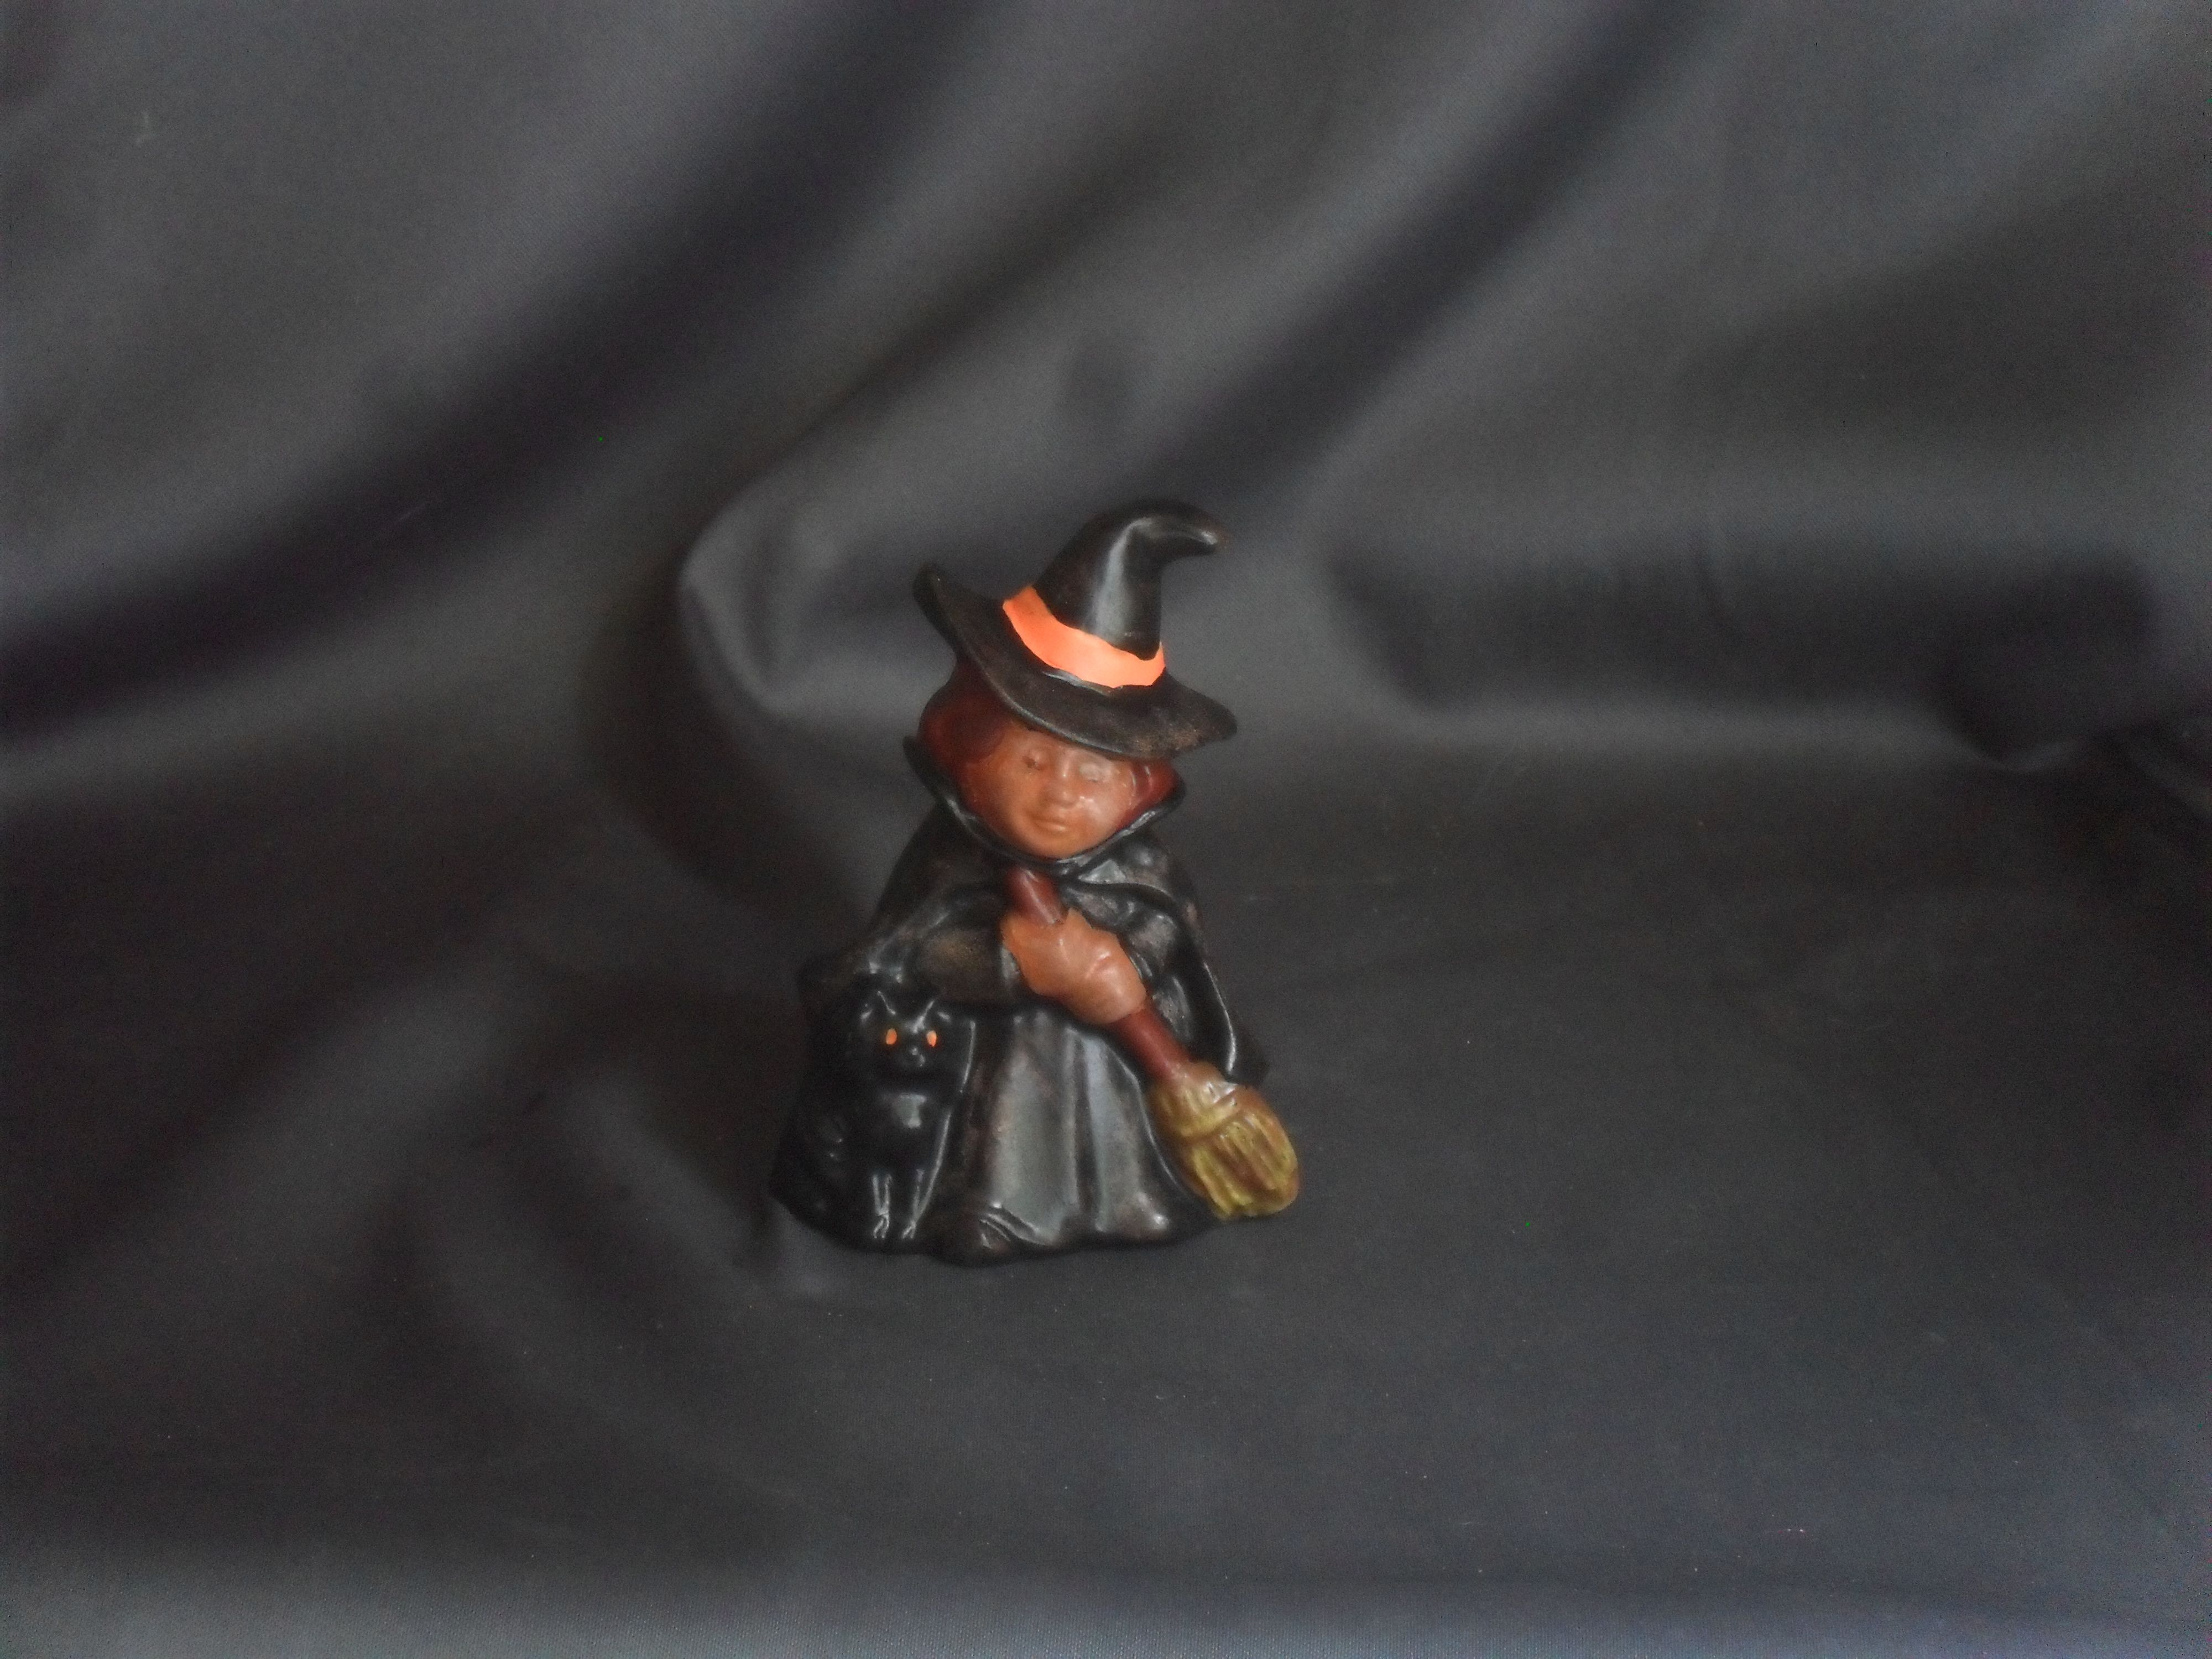 "This cute little witch is made using a vintage mold made by Duncan ceramics in 1973 and was hand painted making it a one of a kind original.   The little witch figure is 4 ½"" tall x 2 ¼"" wide x 2 ¼ "" in depth . She is dry brushed to highlight her ..."